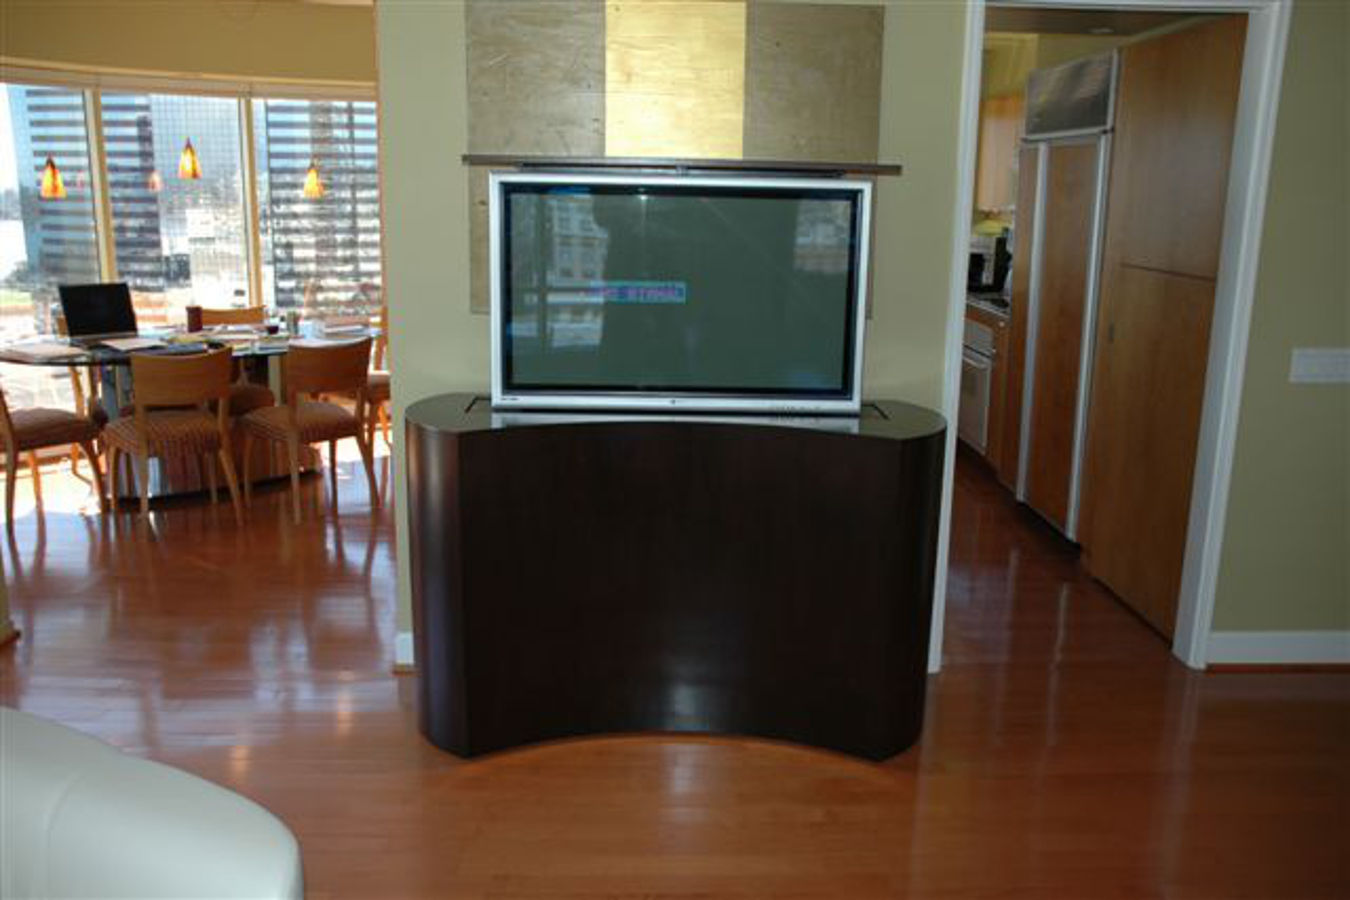 Browse More #968335 Bedroom TV. How To Install The Retractable TV Stand  Retractable Tv